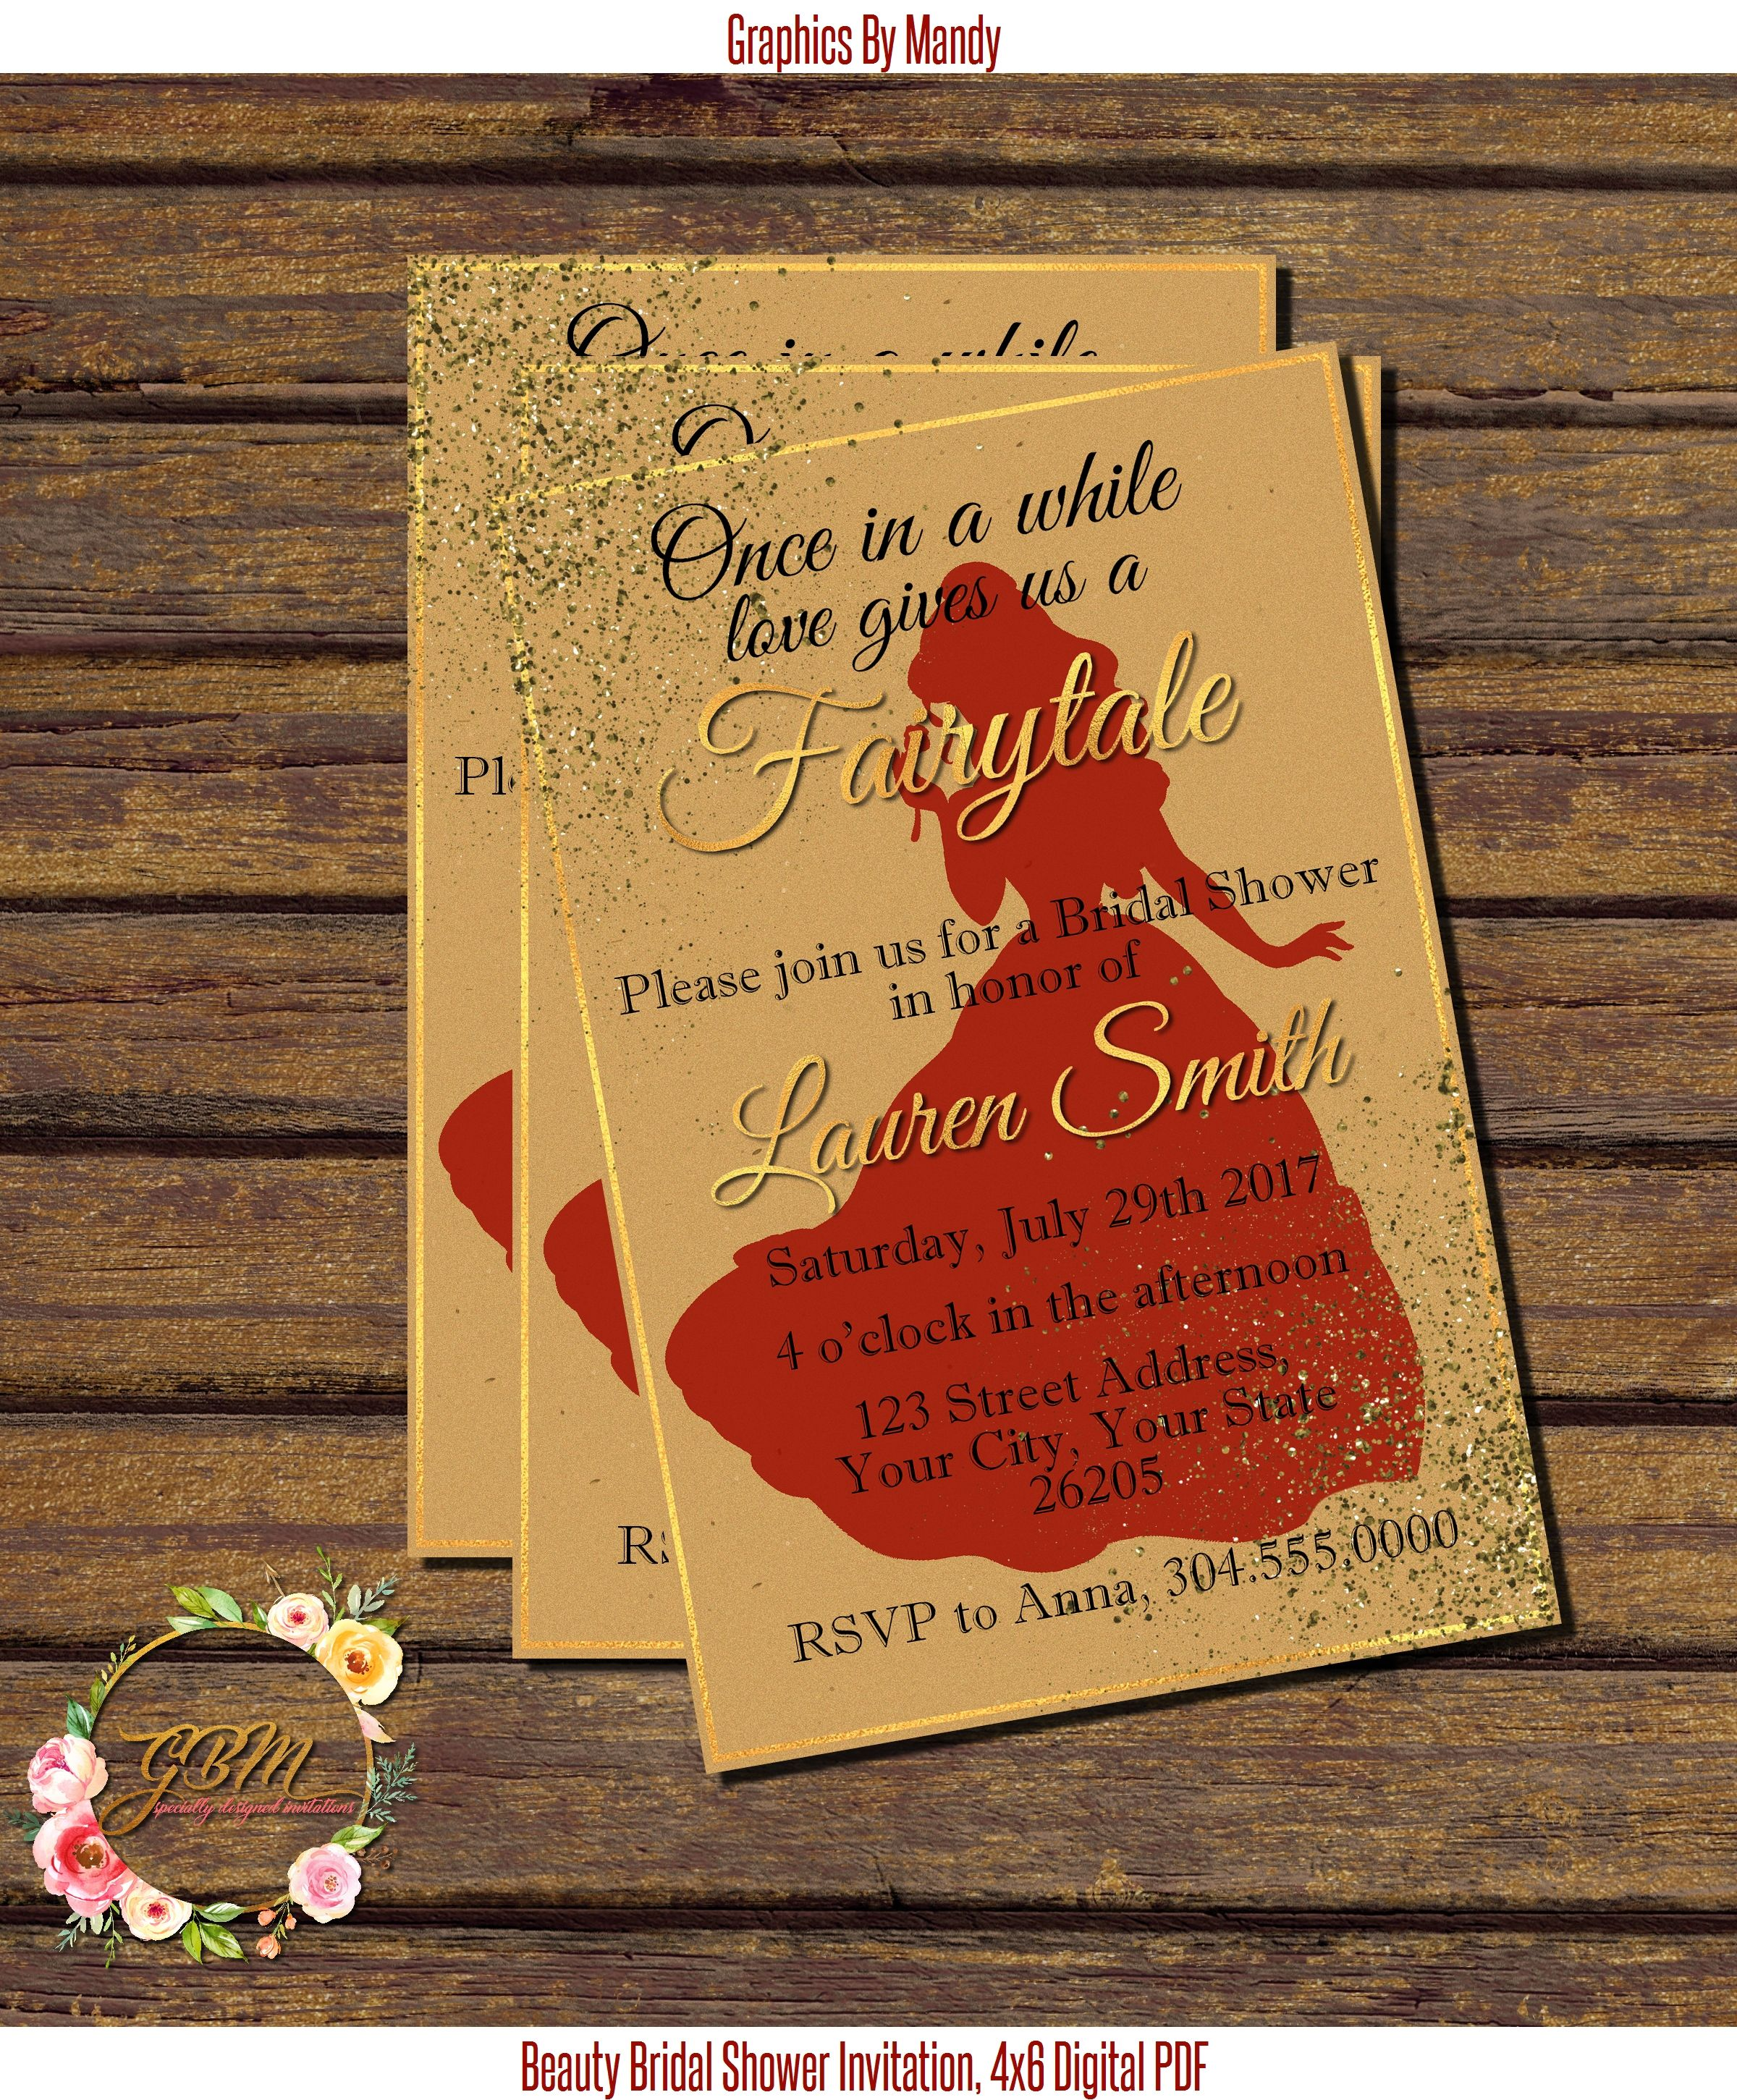 Beauty and the Beast inspired Bridal Shower invitation 4x6 PDF